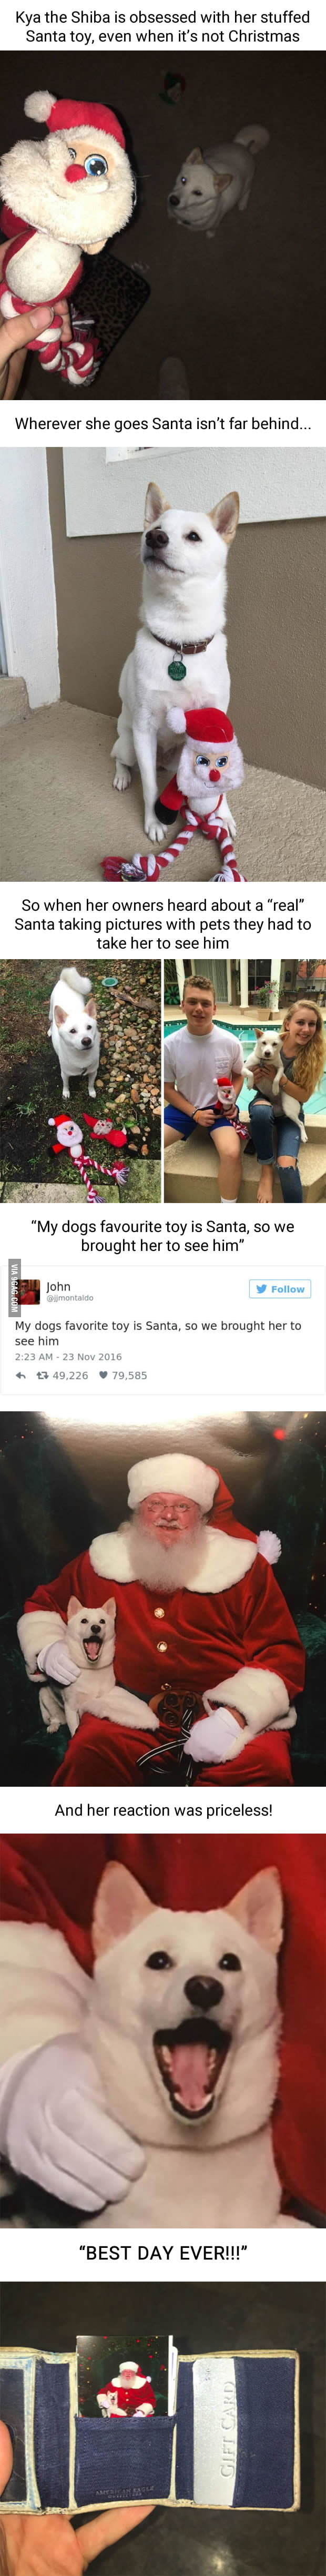 White Doge obsessed with stuffed santa finally gets to meet her idol in real life